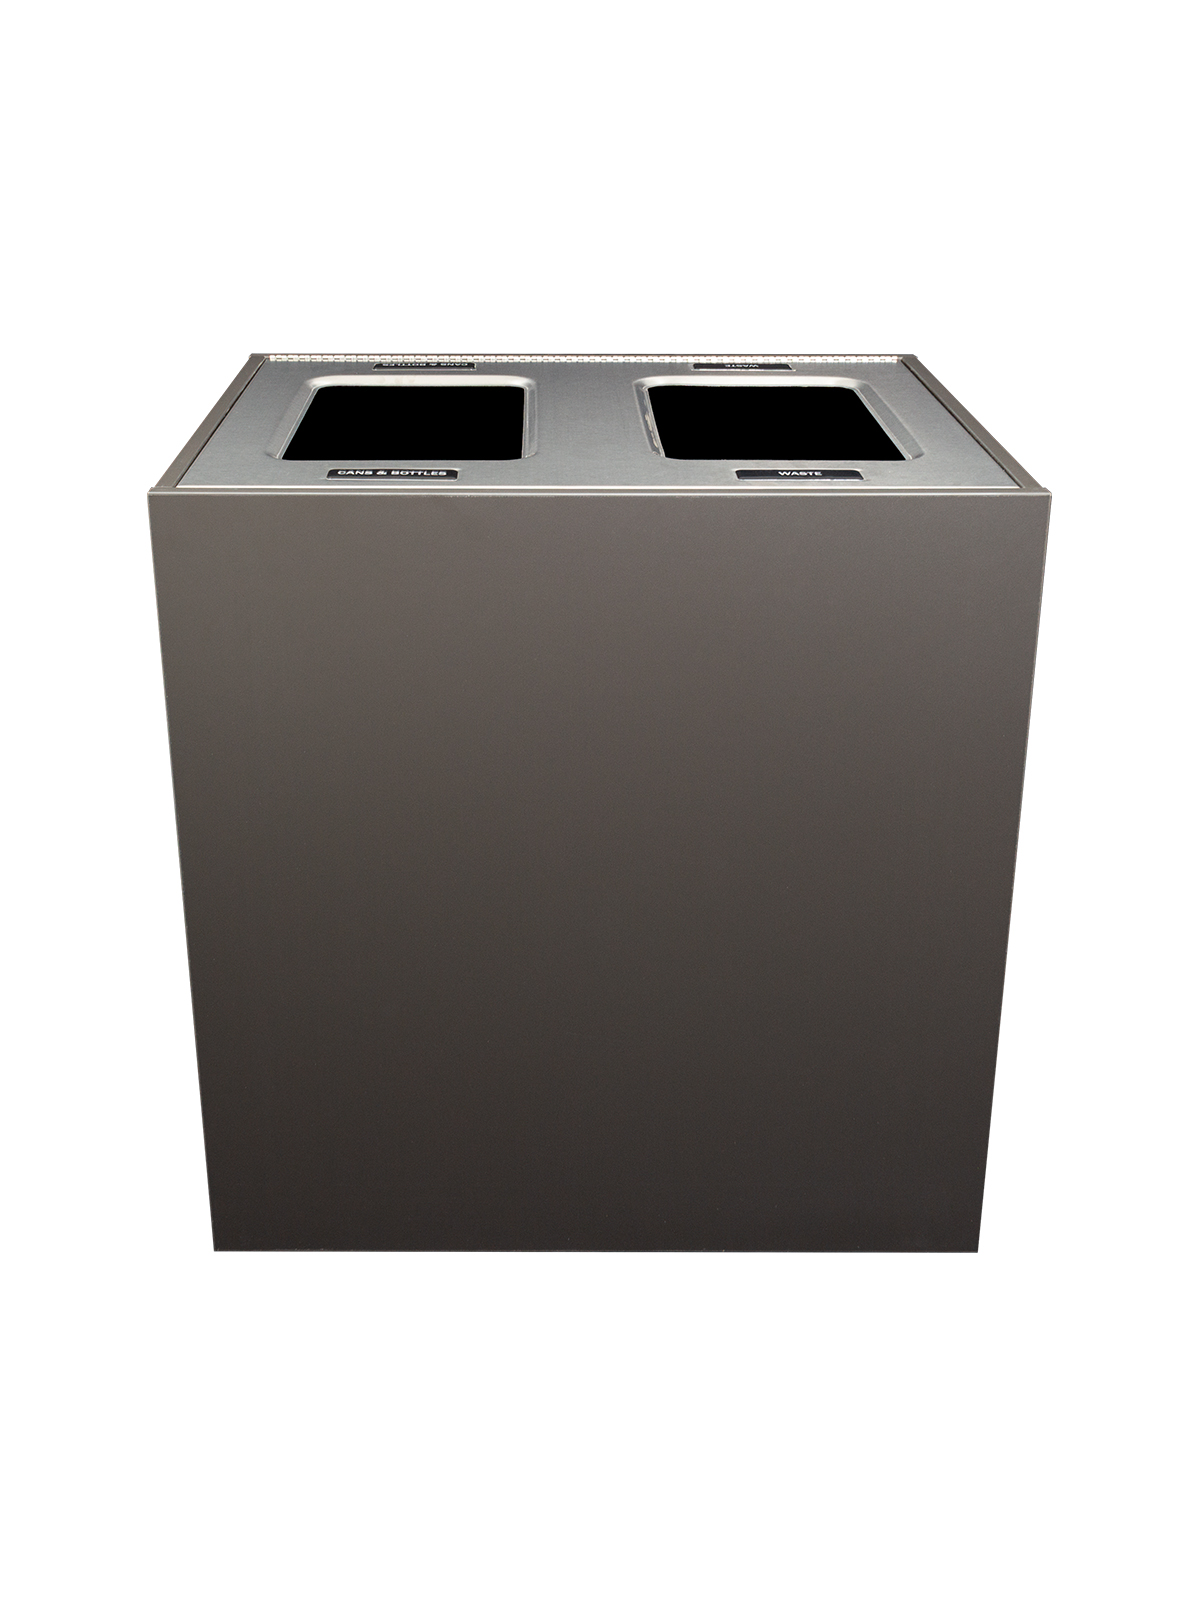 ARISTATA - Double - Unit - Xl - Cans & Bottles-Waste - Full - Slate-Stainless Steel